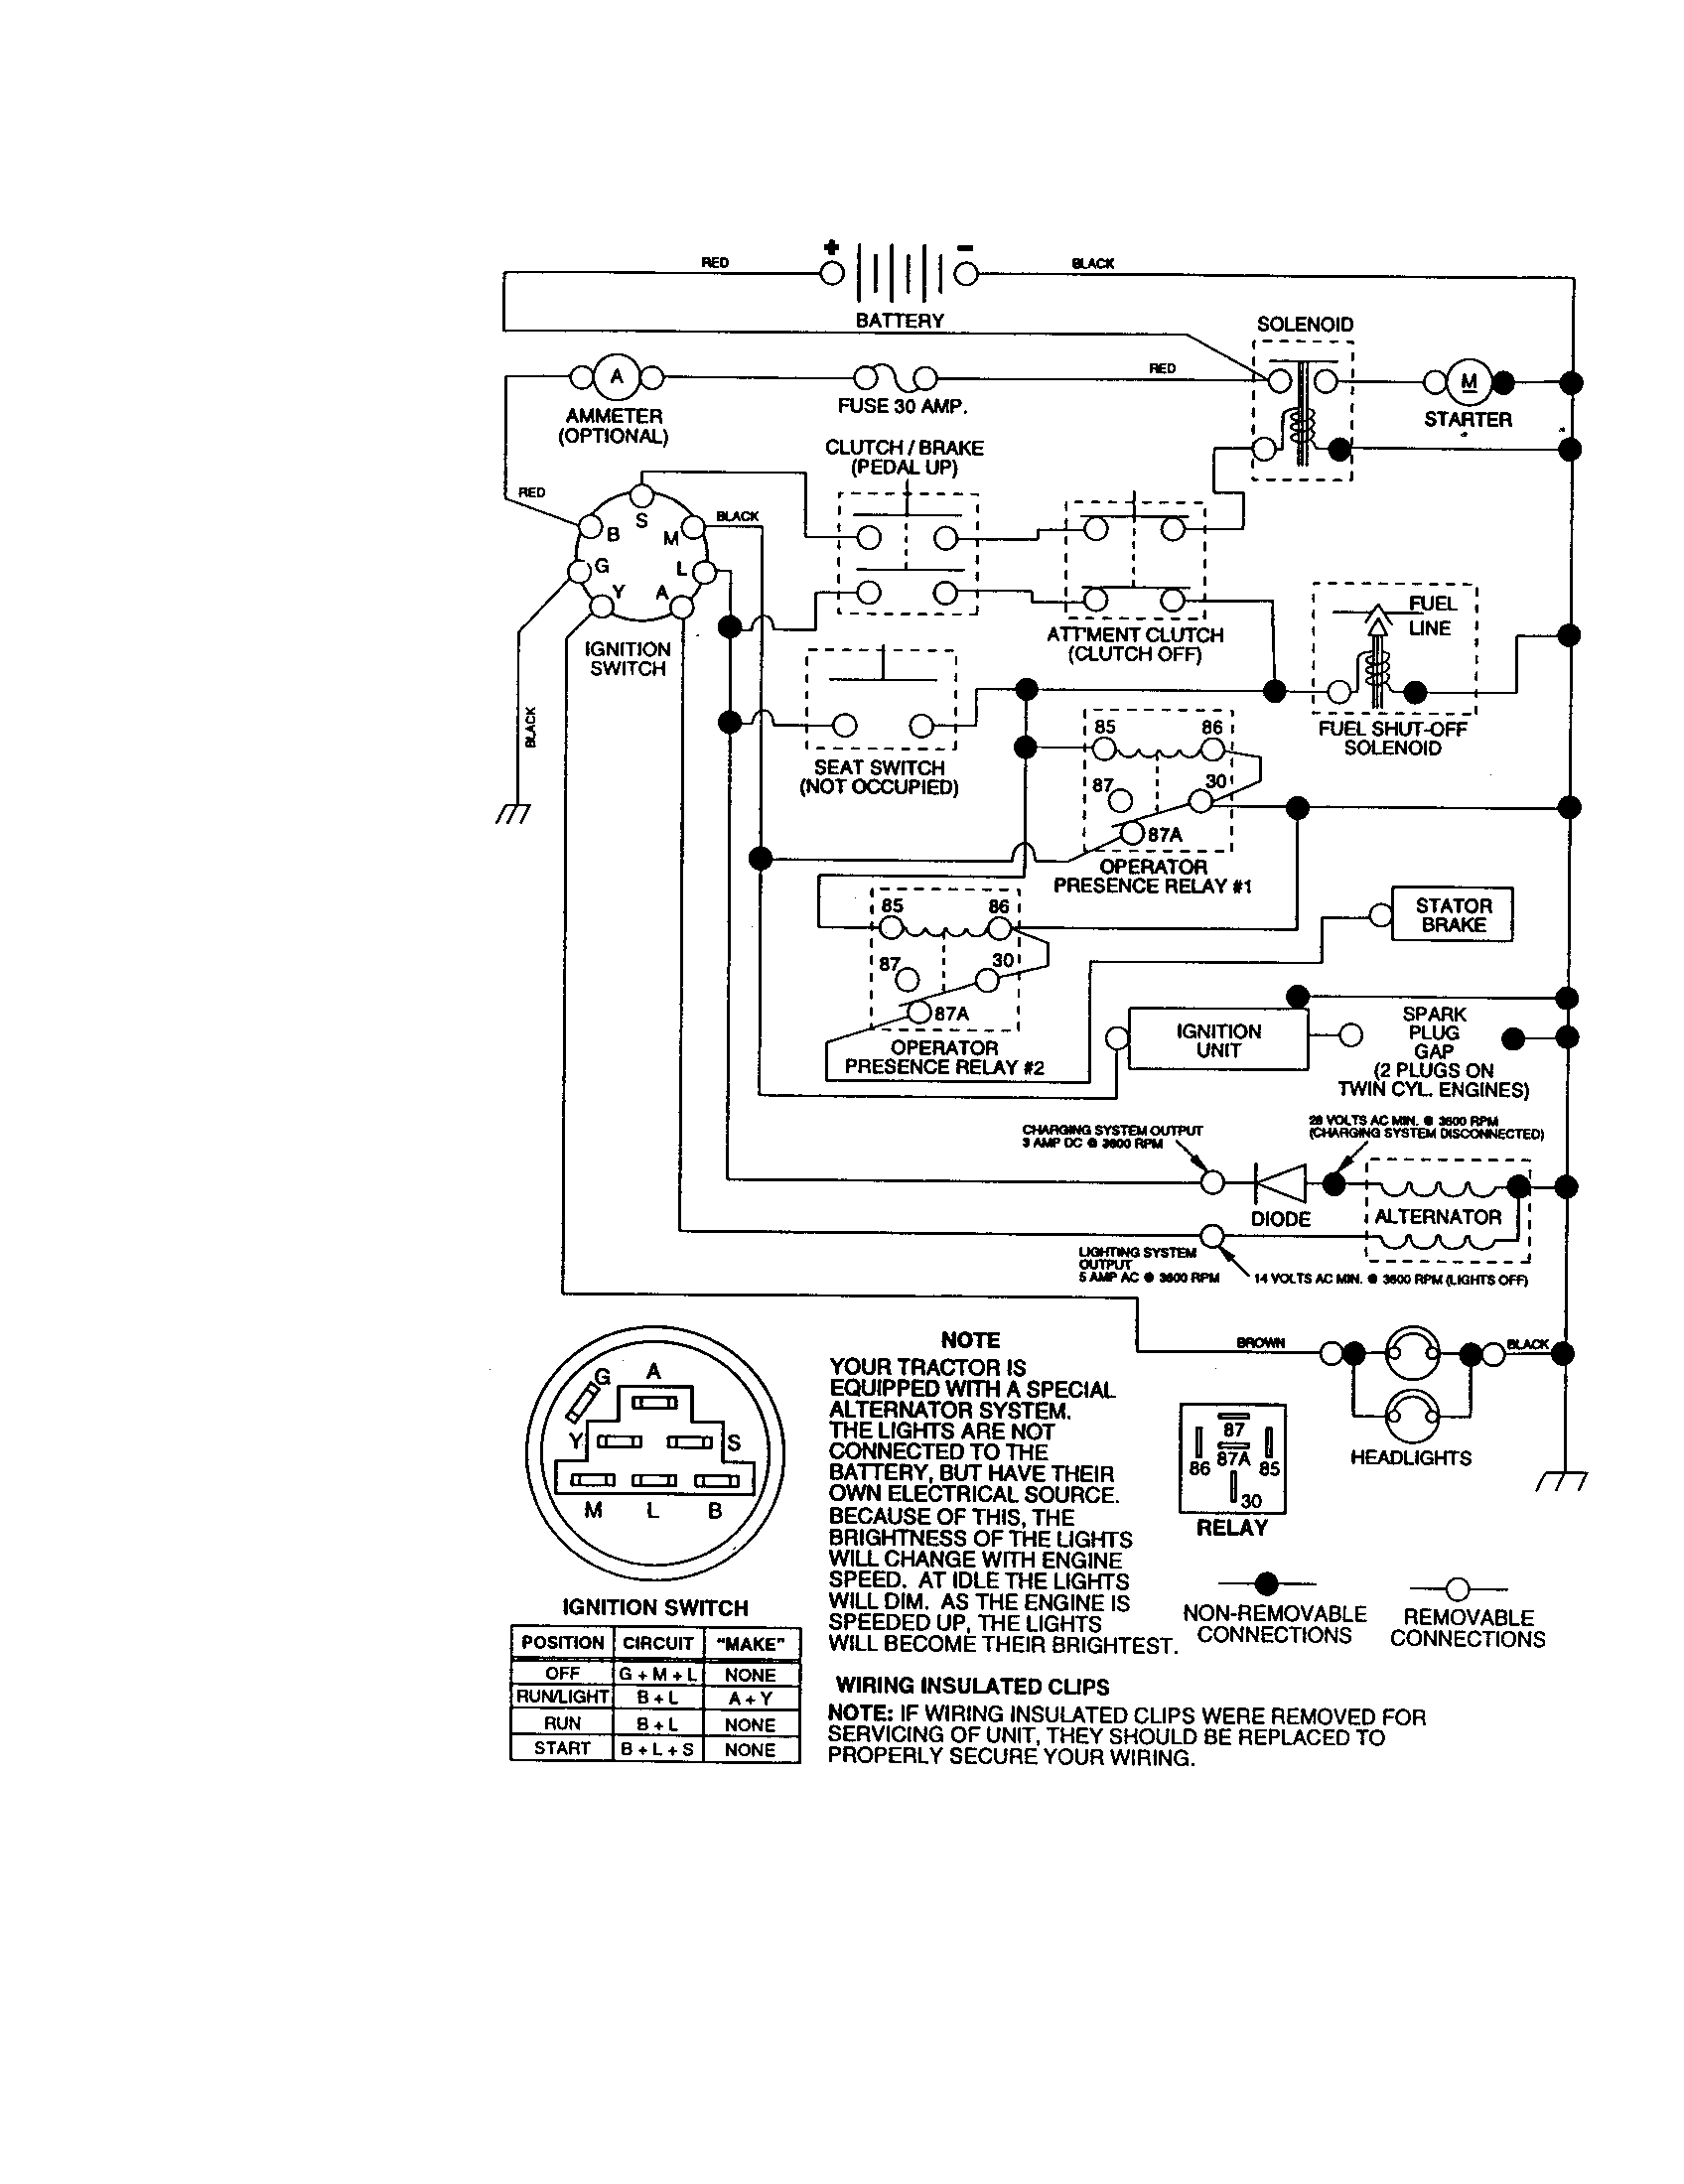 WIRING Diagram & Parts List for Model 917271011 Craftsman